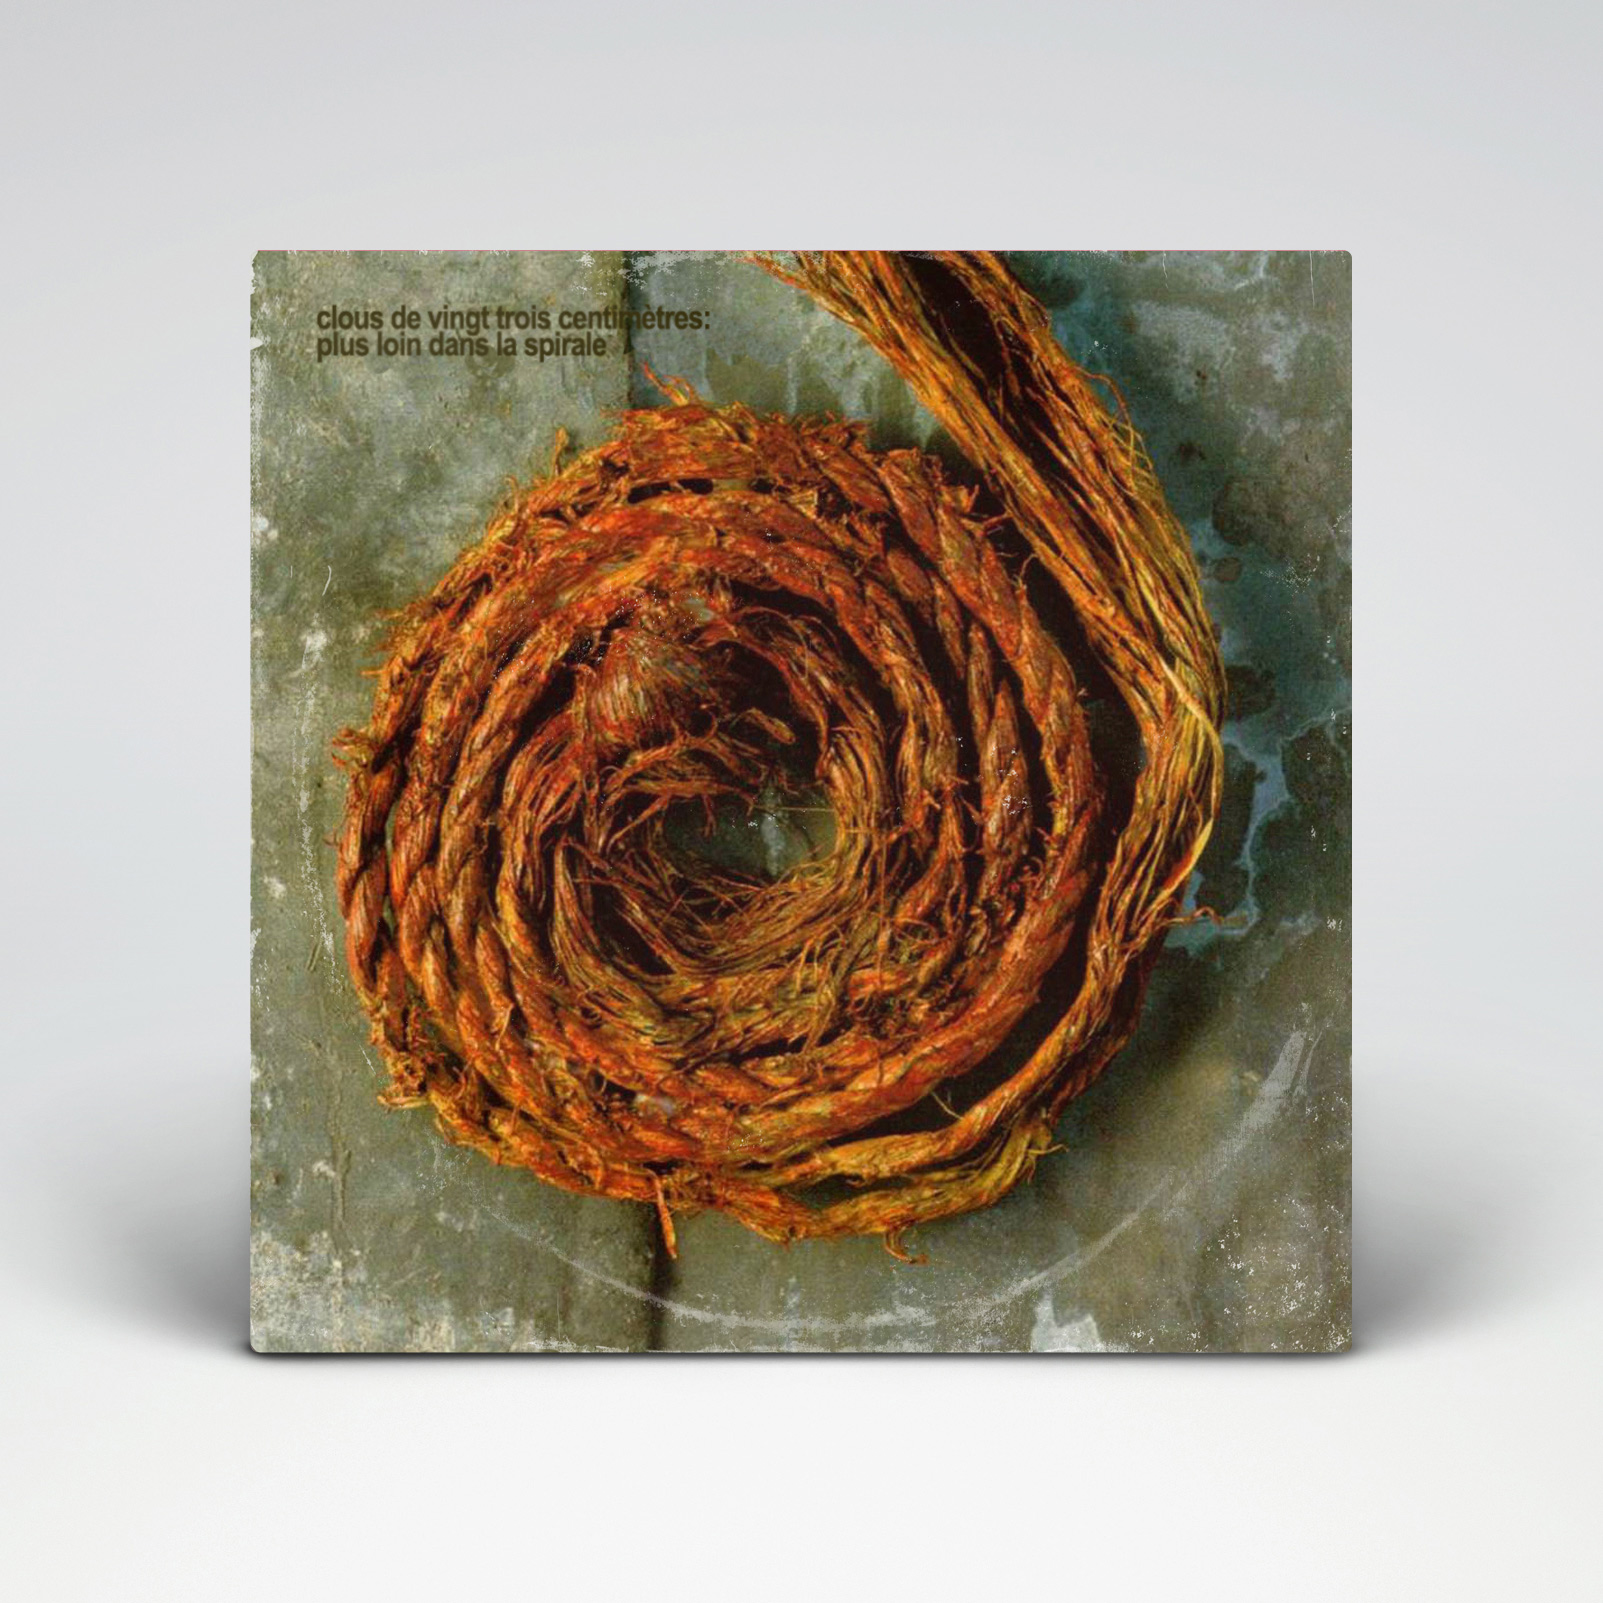 Nine Inch Nails - Further Down The Spiral (1995)